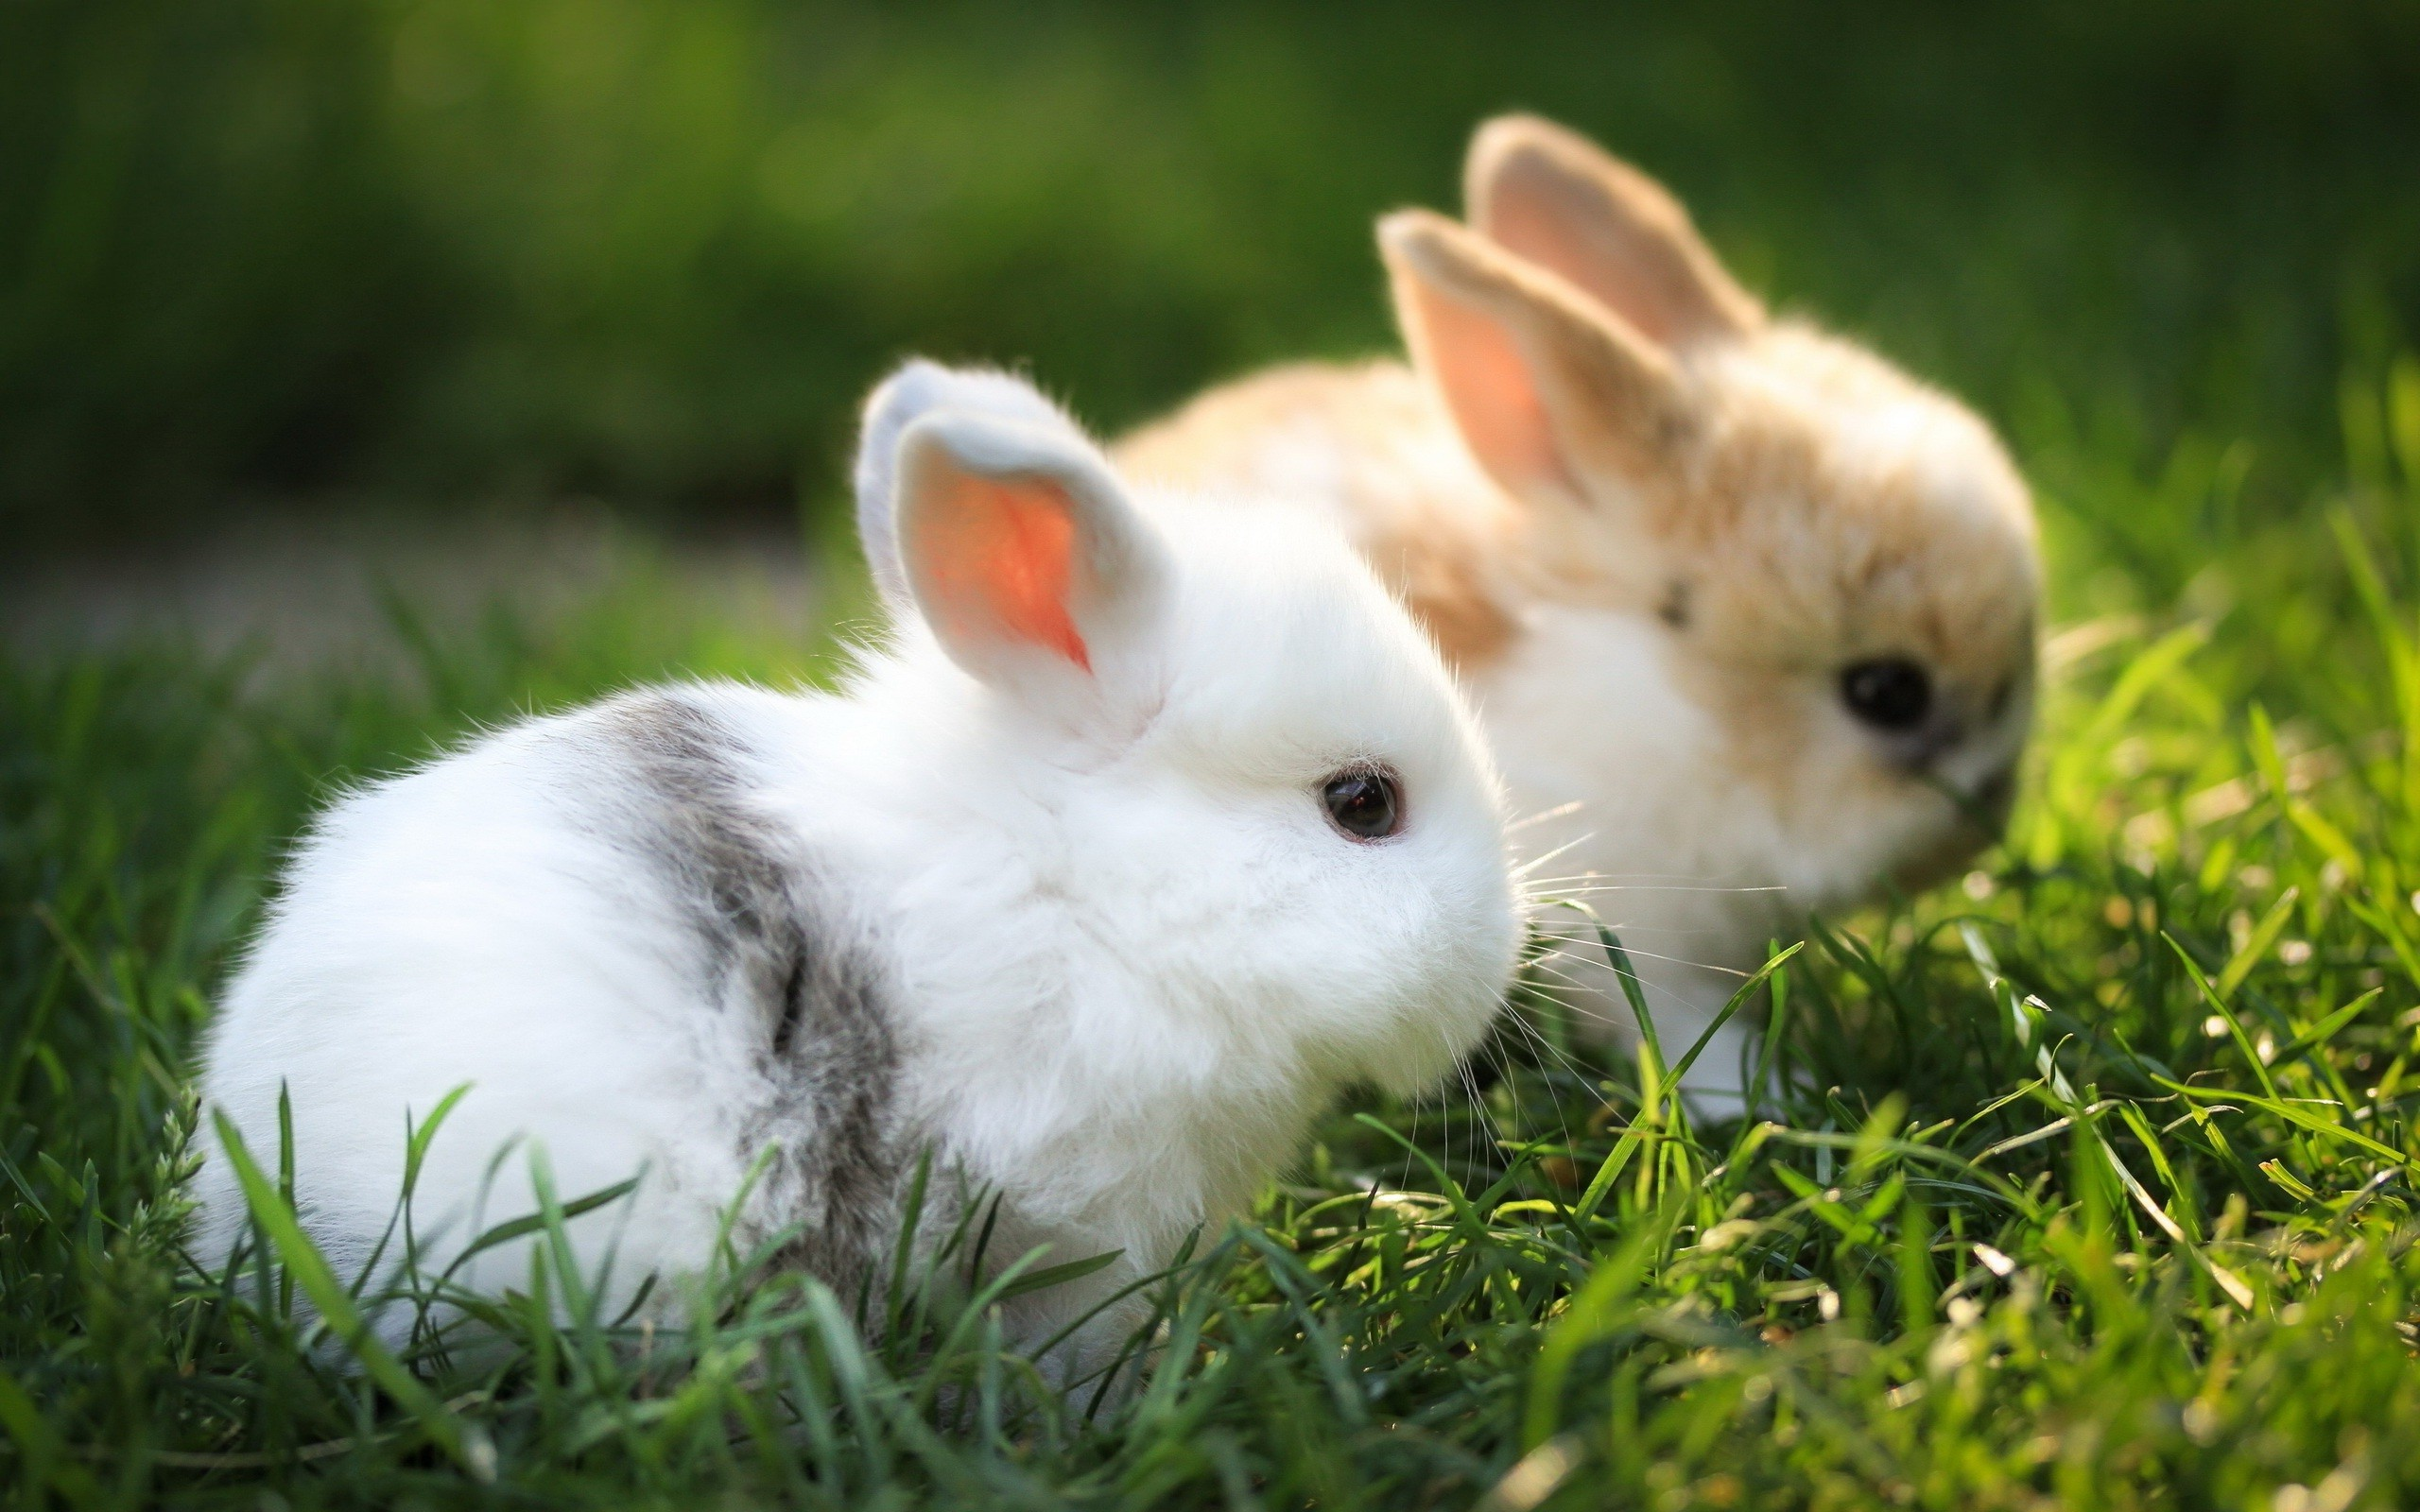 Lovely Hd Free Wallpapers Rabbits For Desktop